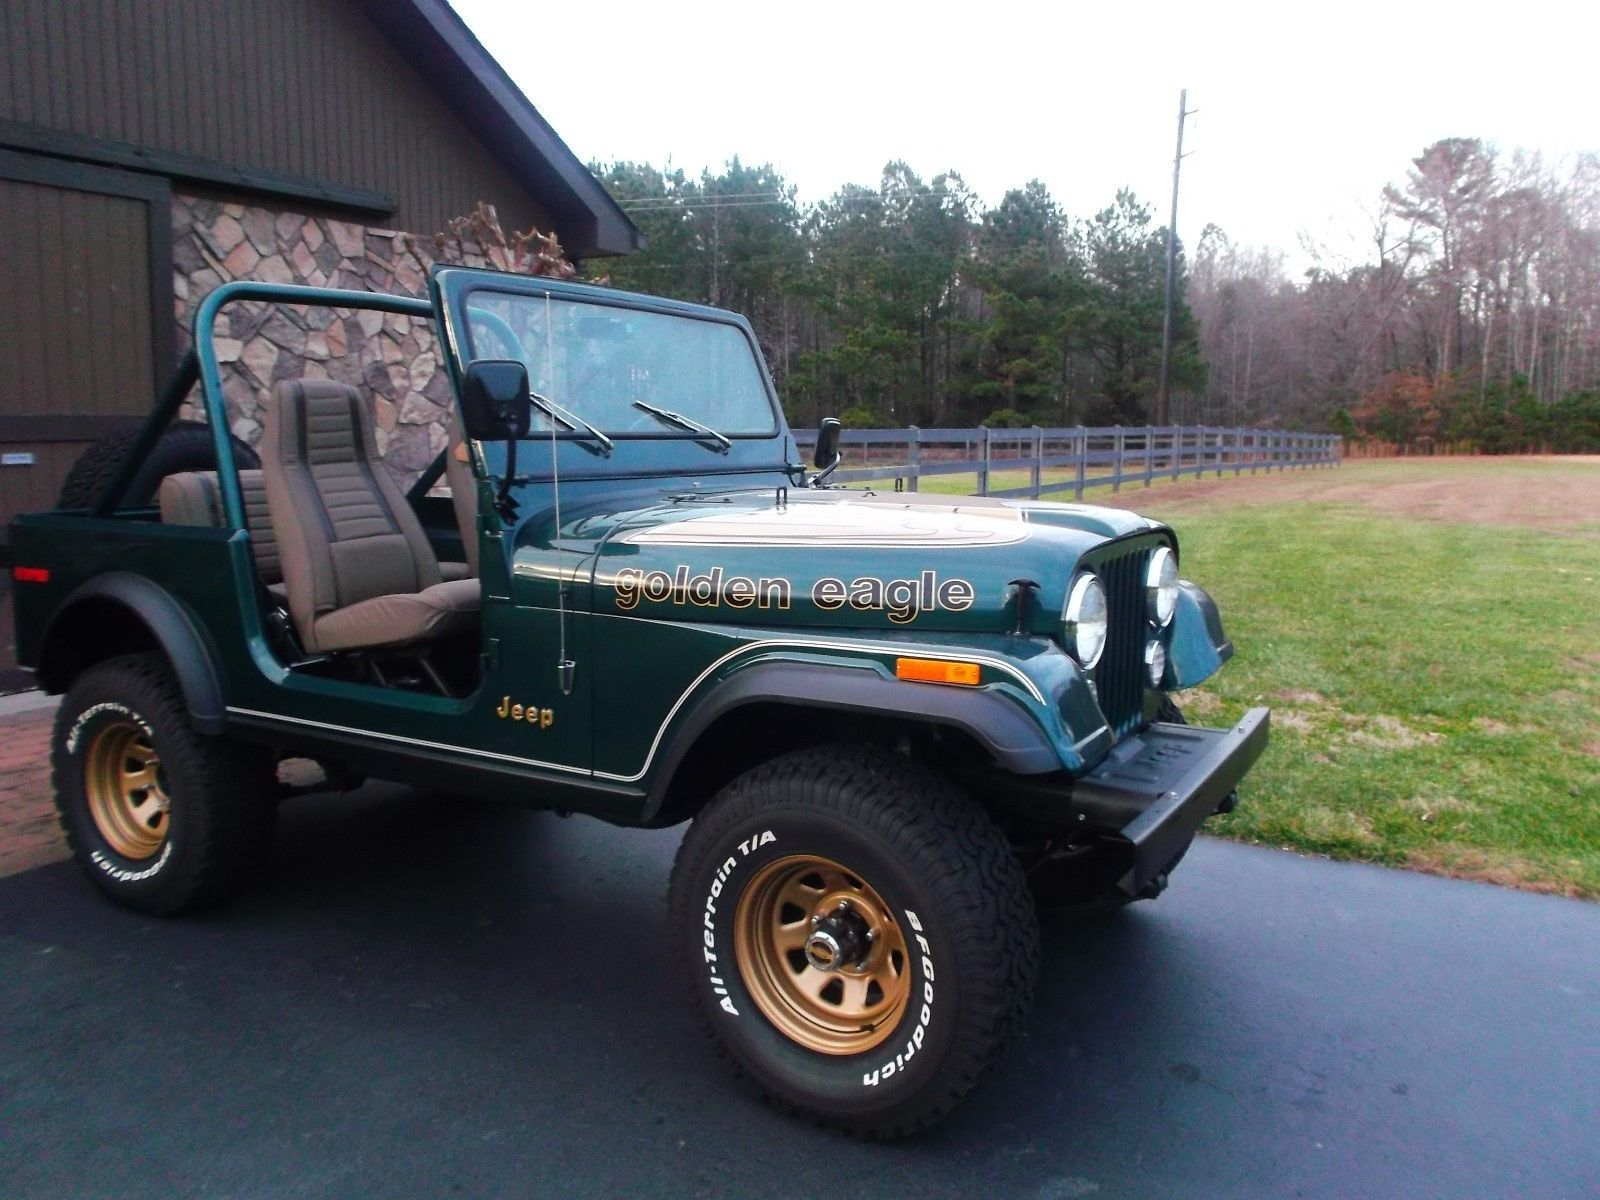 eBay 1980 Jeep CJ Golden Eagle 1980 JEEP CJ 7 GOLDEN EAGLE JEEP